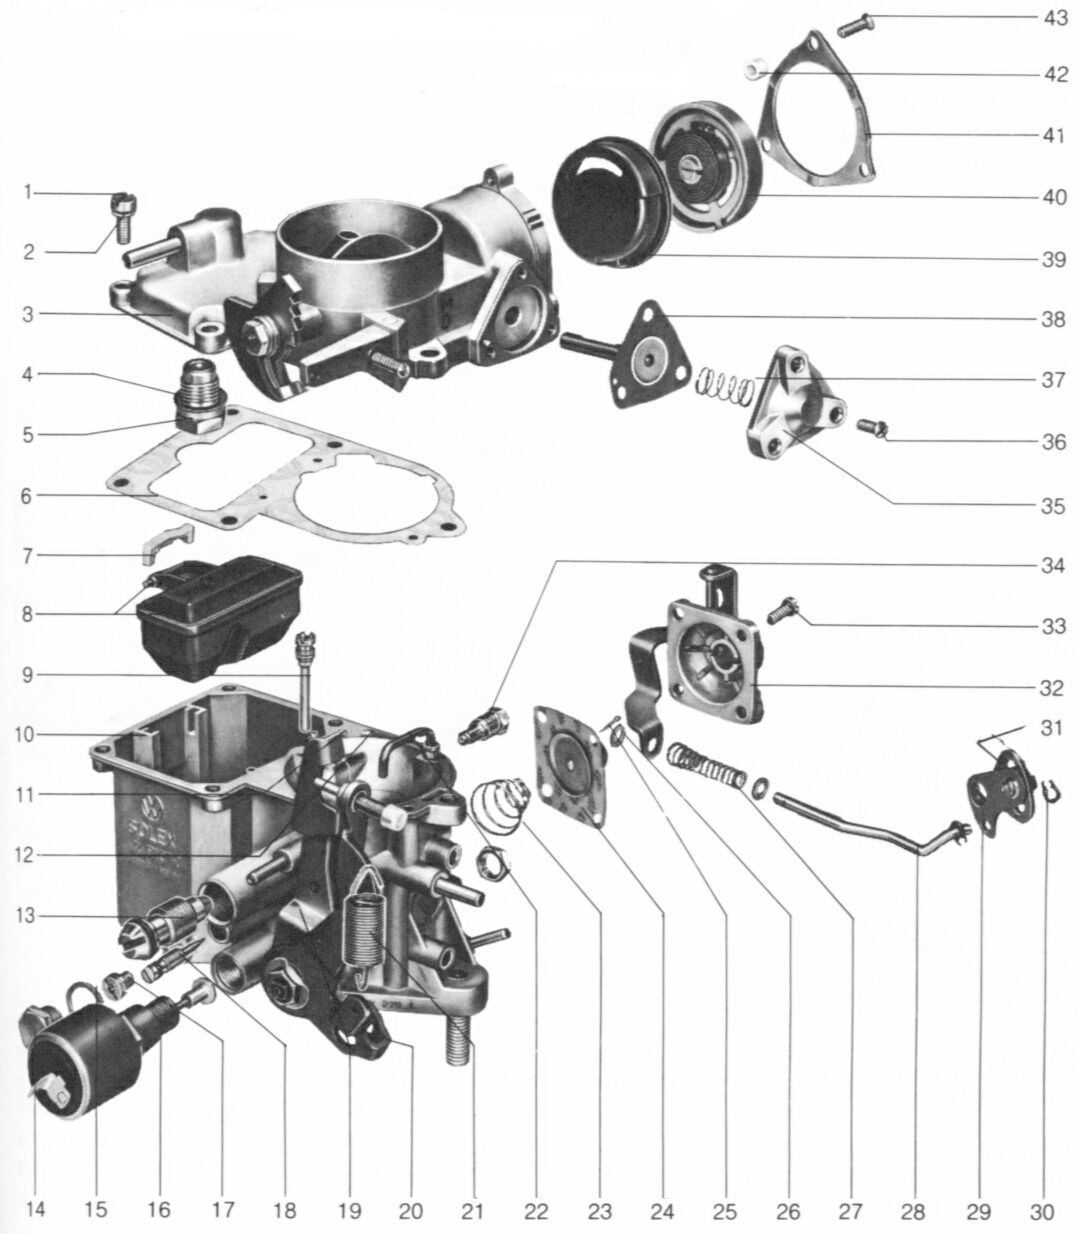 34 Pict 3 Carburetor Overhaul Exploded Diagram Engine Related Keywords Suggestions A General View Of The 34pict Is Shown In Following That Listing Parts Giving Nomenclature And Part